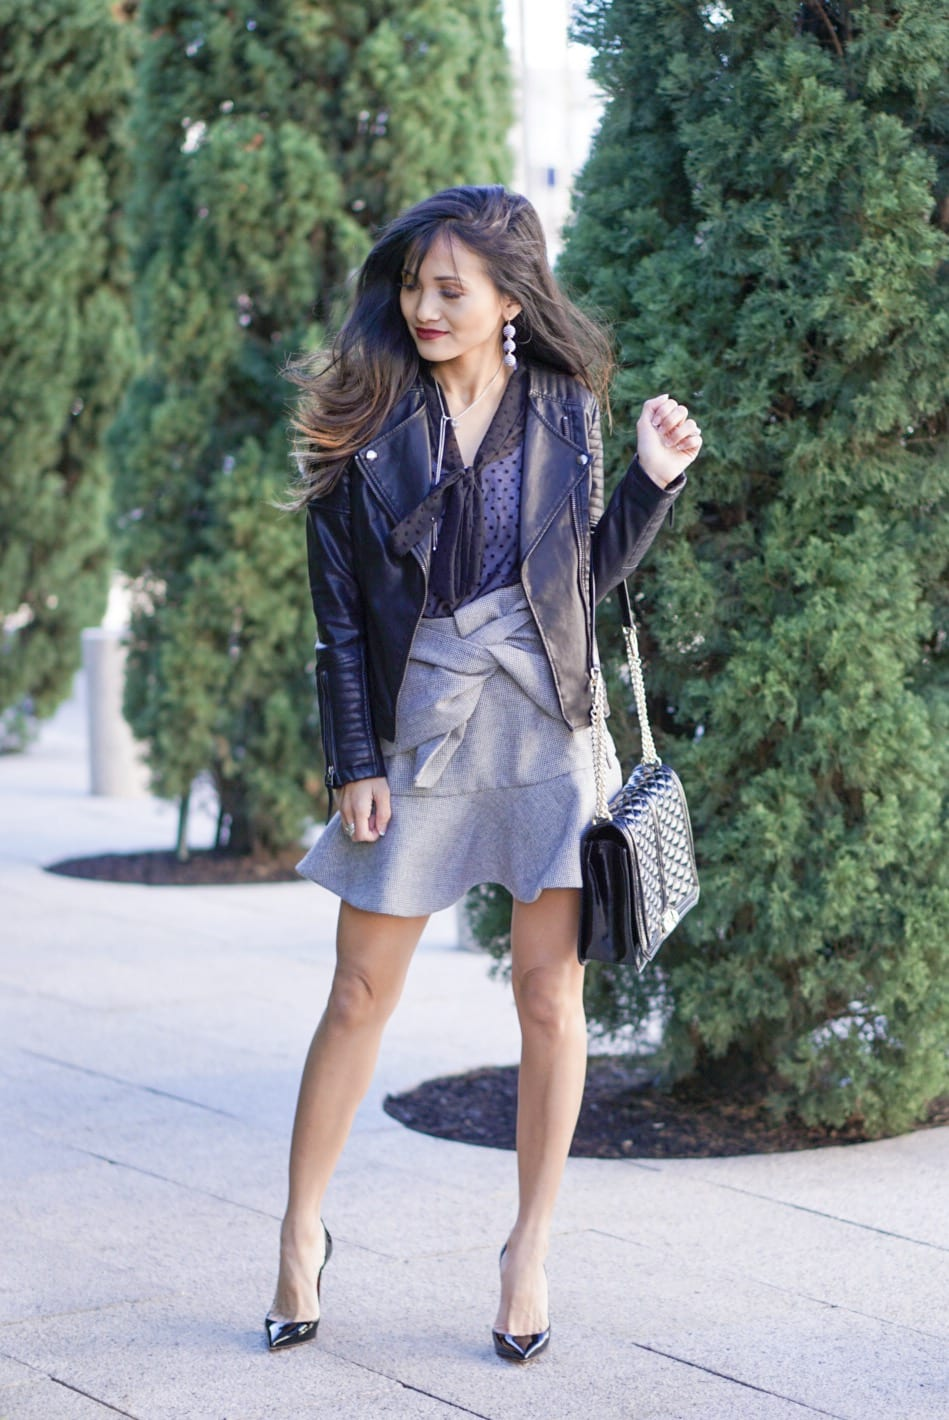 gingham skirt, bow skirt, bow neck top, leather jacket, love crossbody bag, black patent christian louboutin heels, fashion finds, cute skirts, mini skirts